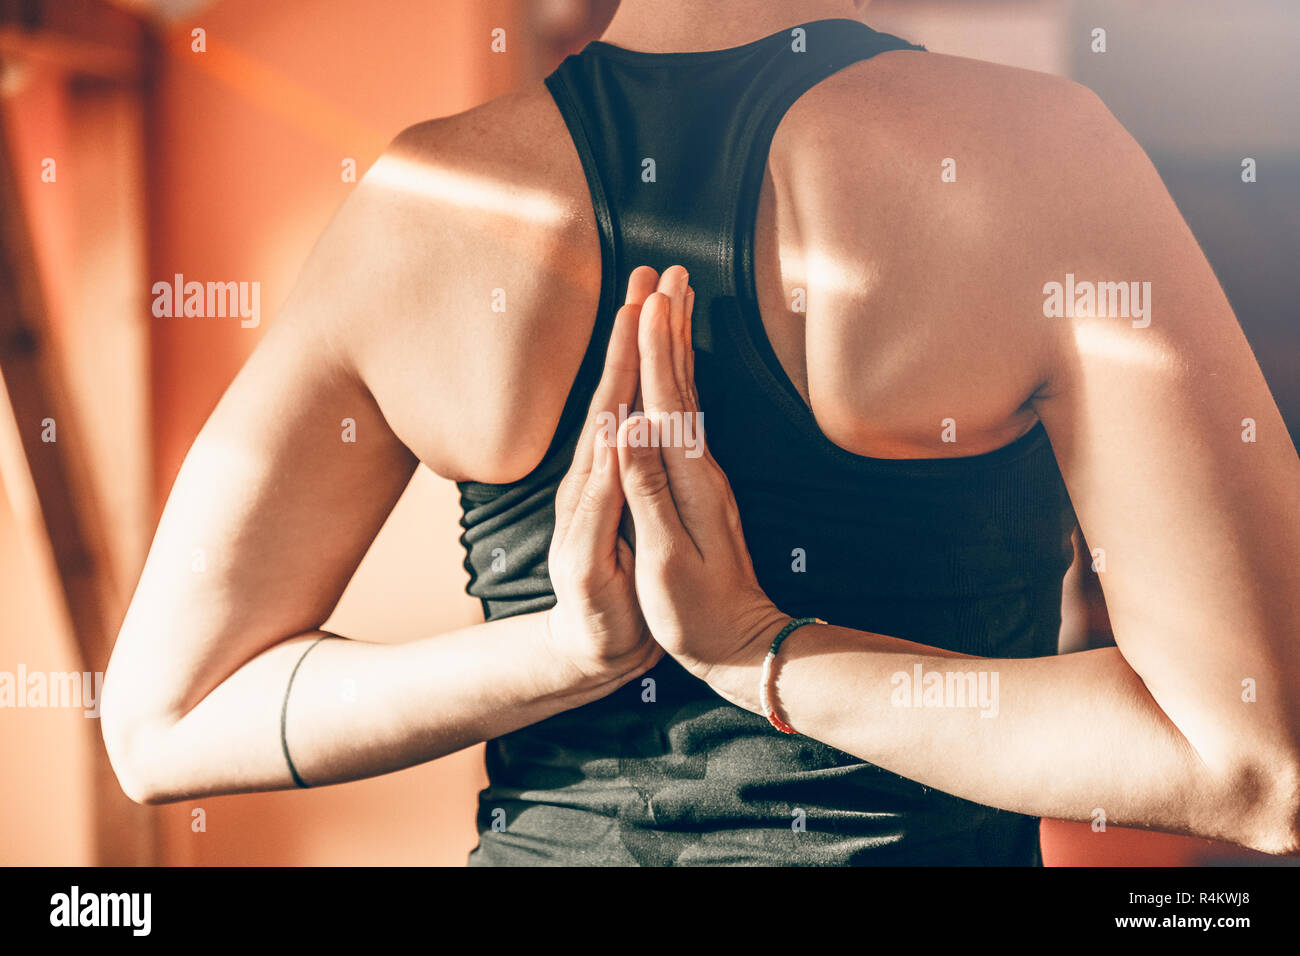 Rear view of woman doing yoga reverse prayer position. - Stock Image